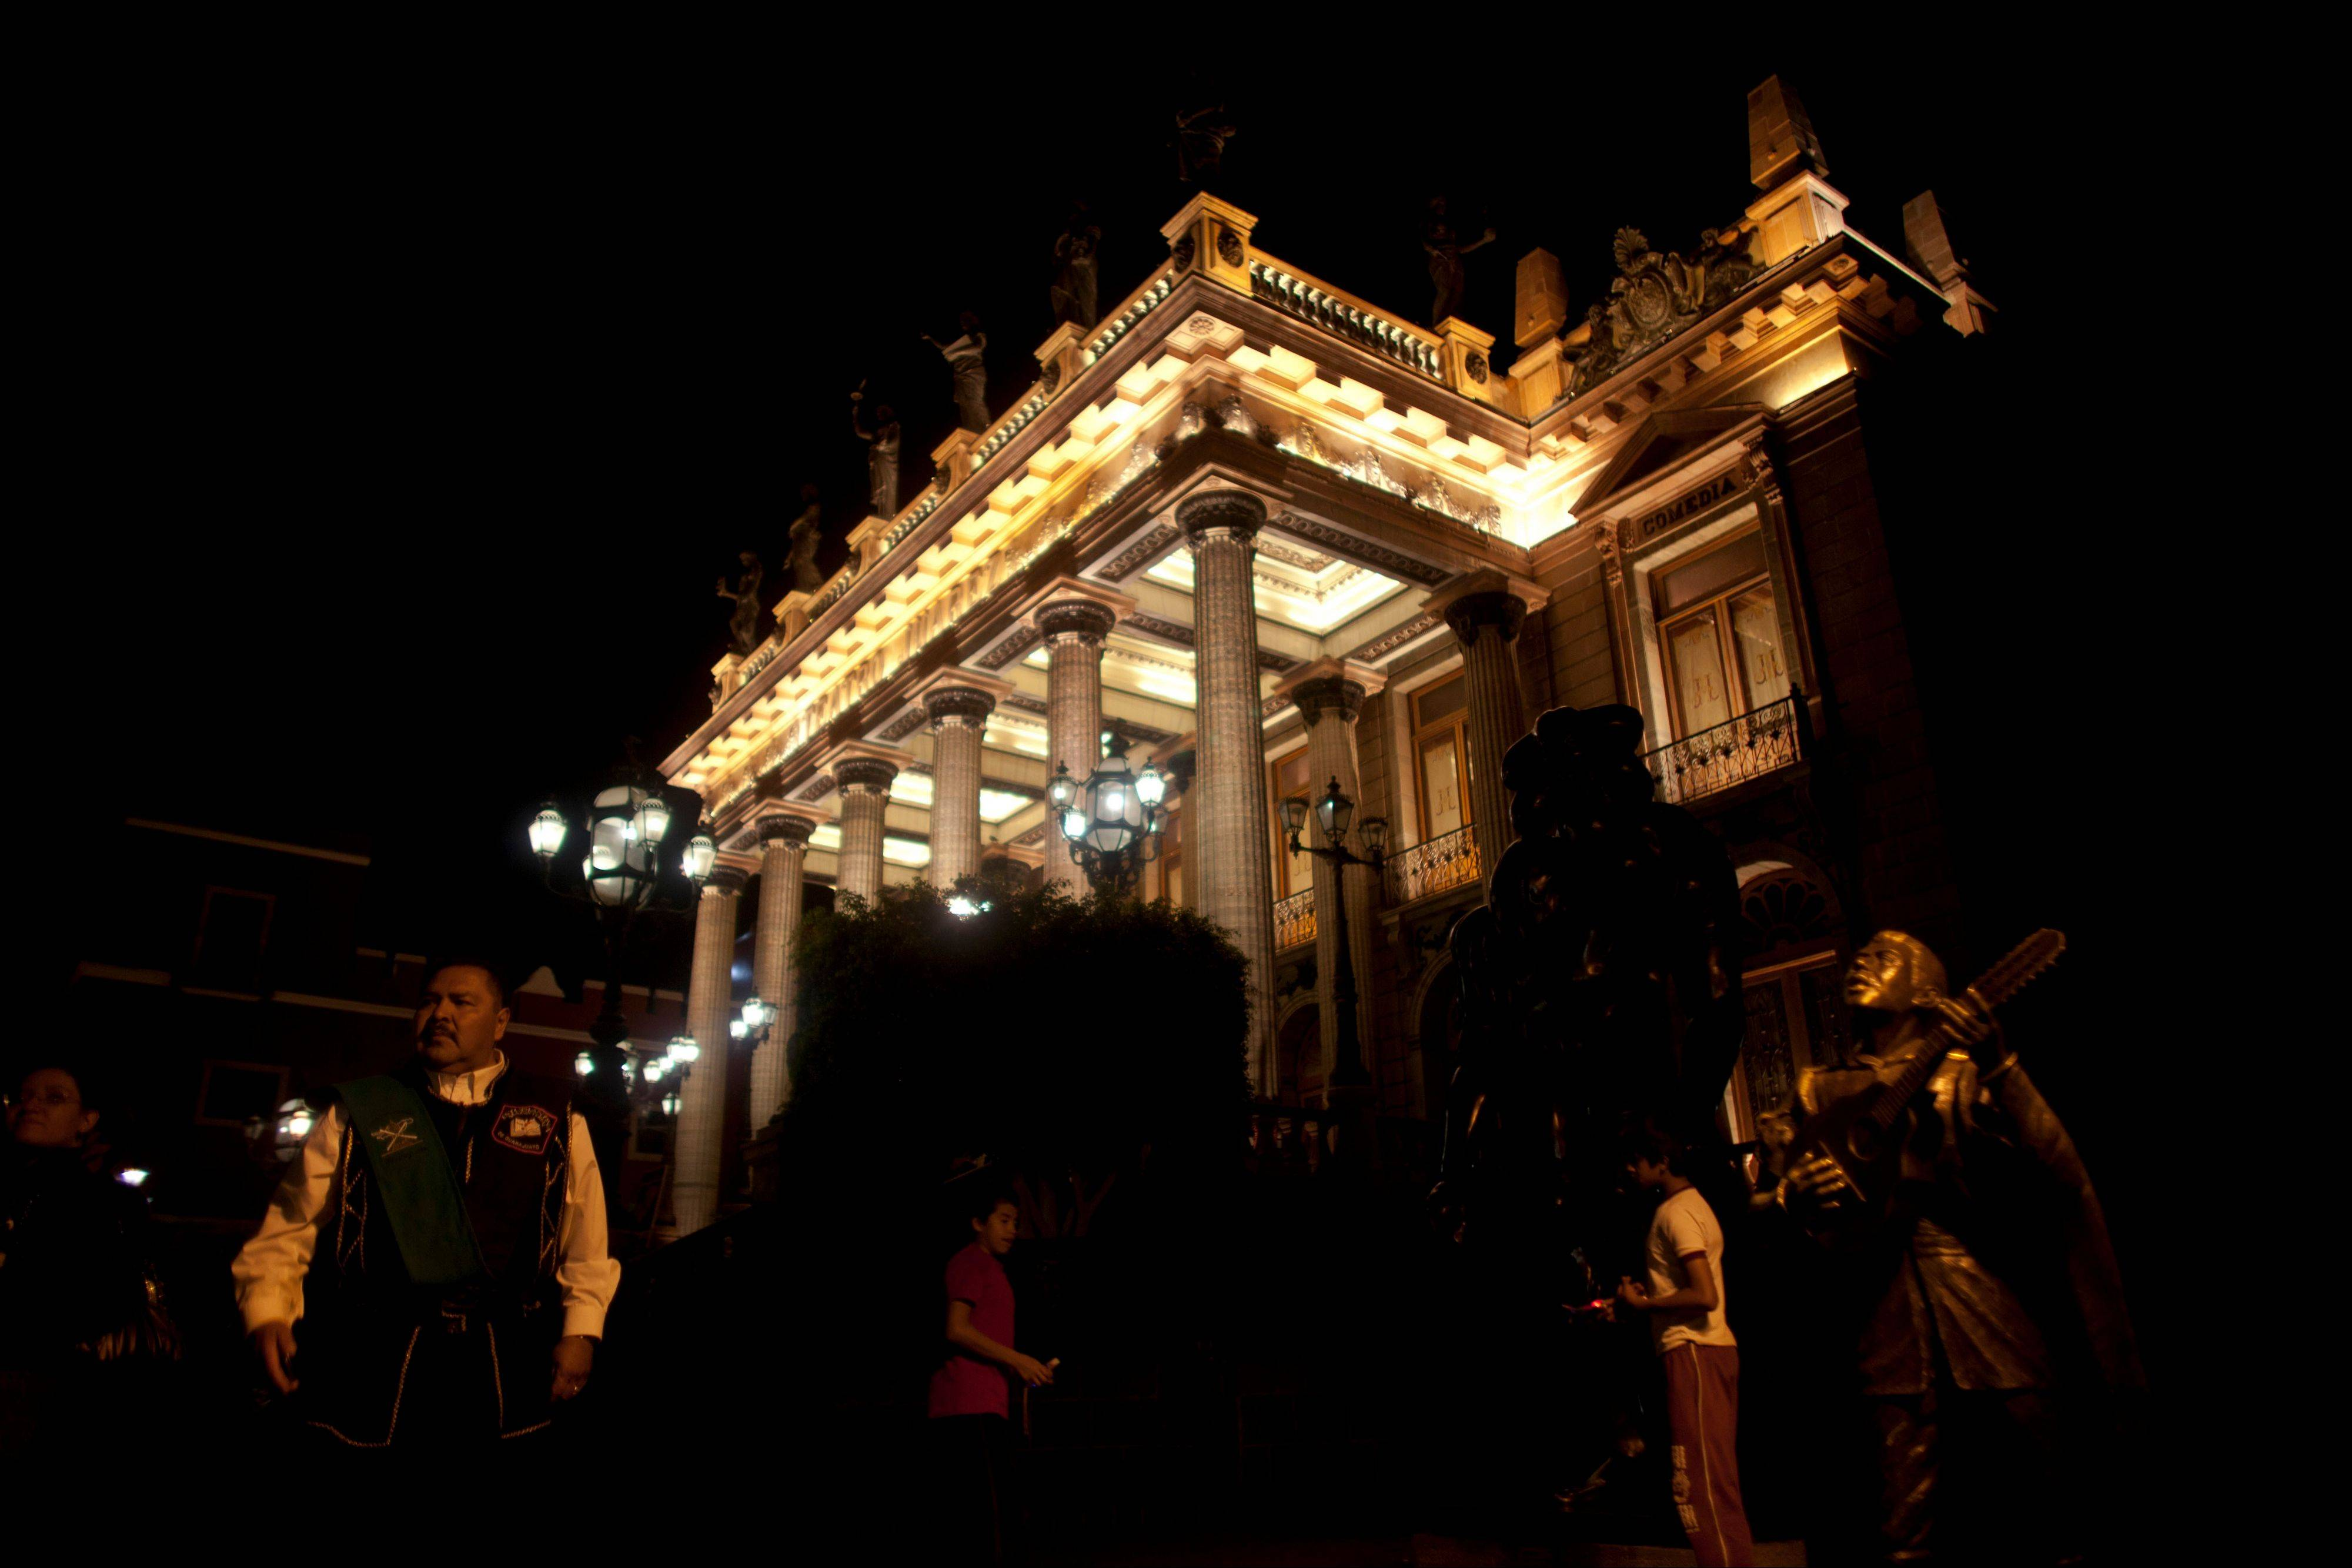 The Juarez theater is lit at night in the colonial city of Guanajuato, Mexico.